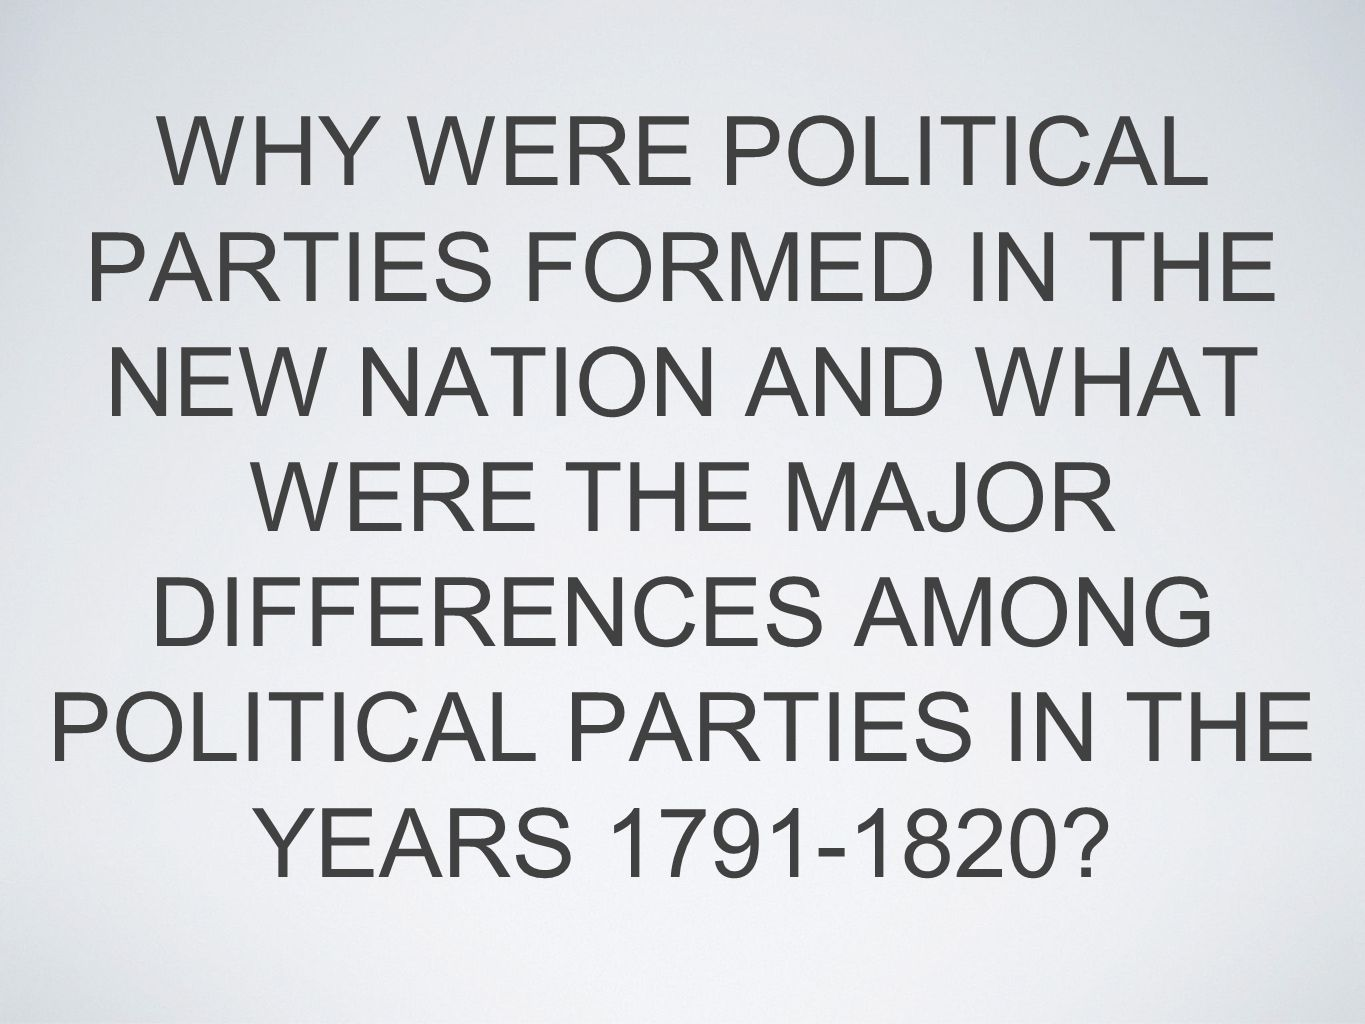 WHY WERE POLITICAL PARTIES FORMED IN THE NEW NATION AND WHAT WERE THE MAJOR DIFFERENCES AMONG POLITICAL PARTIES IN THE YEARS 1791-1820